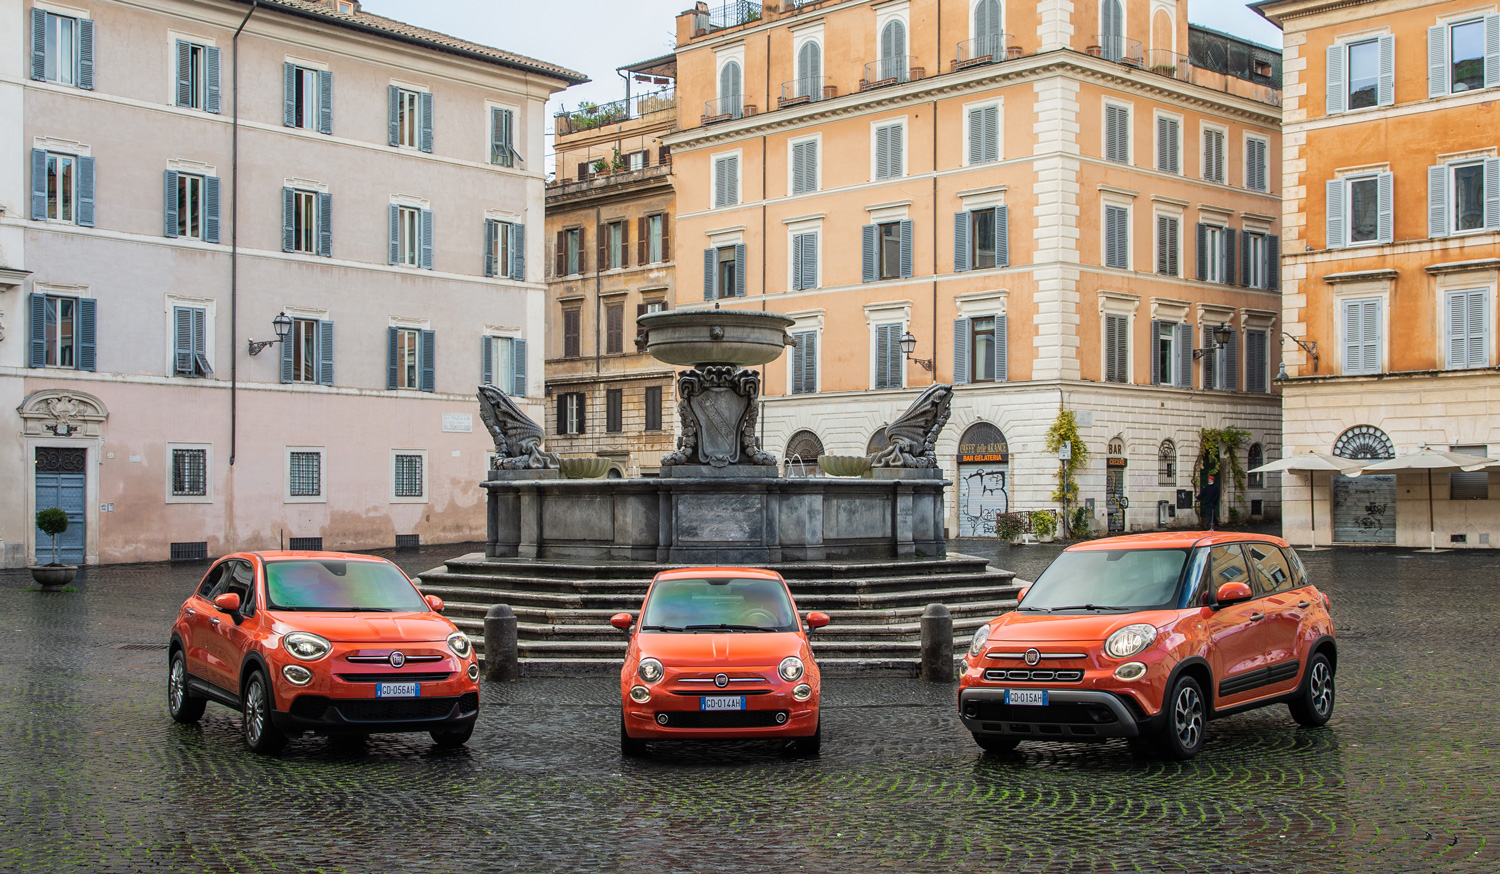 The new 500 family in Italian town square